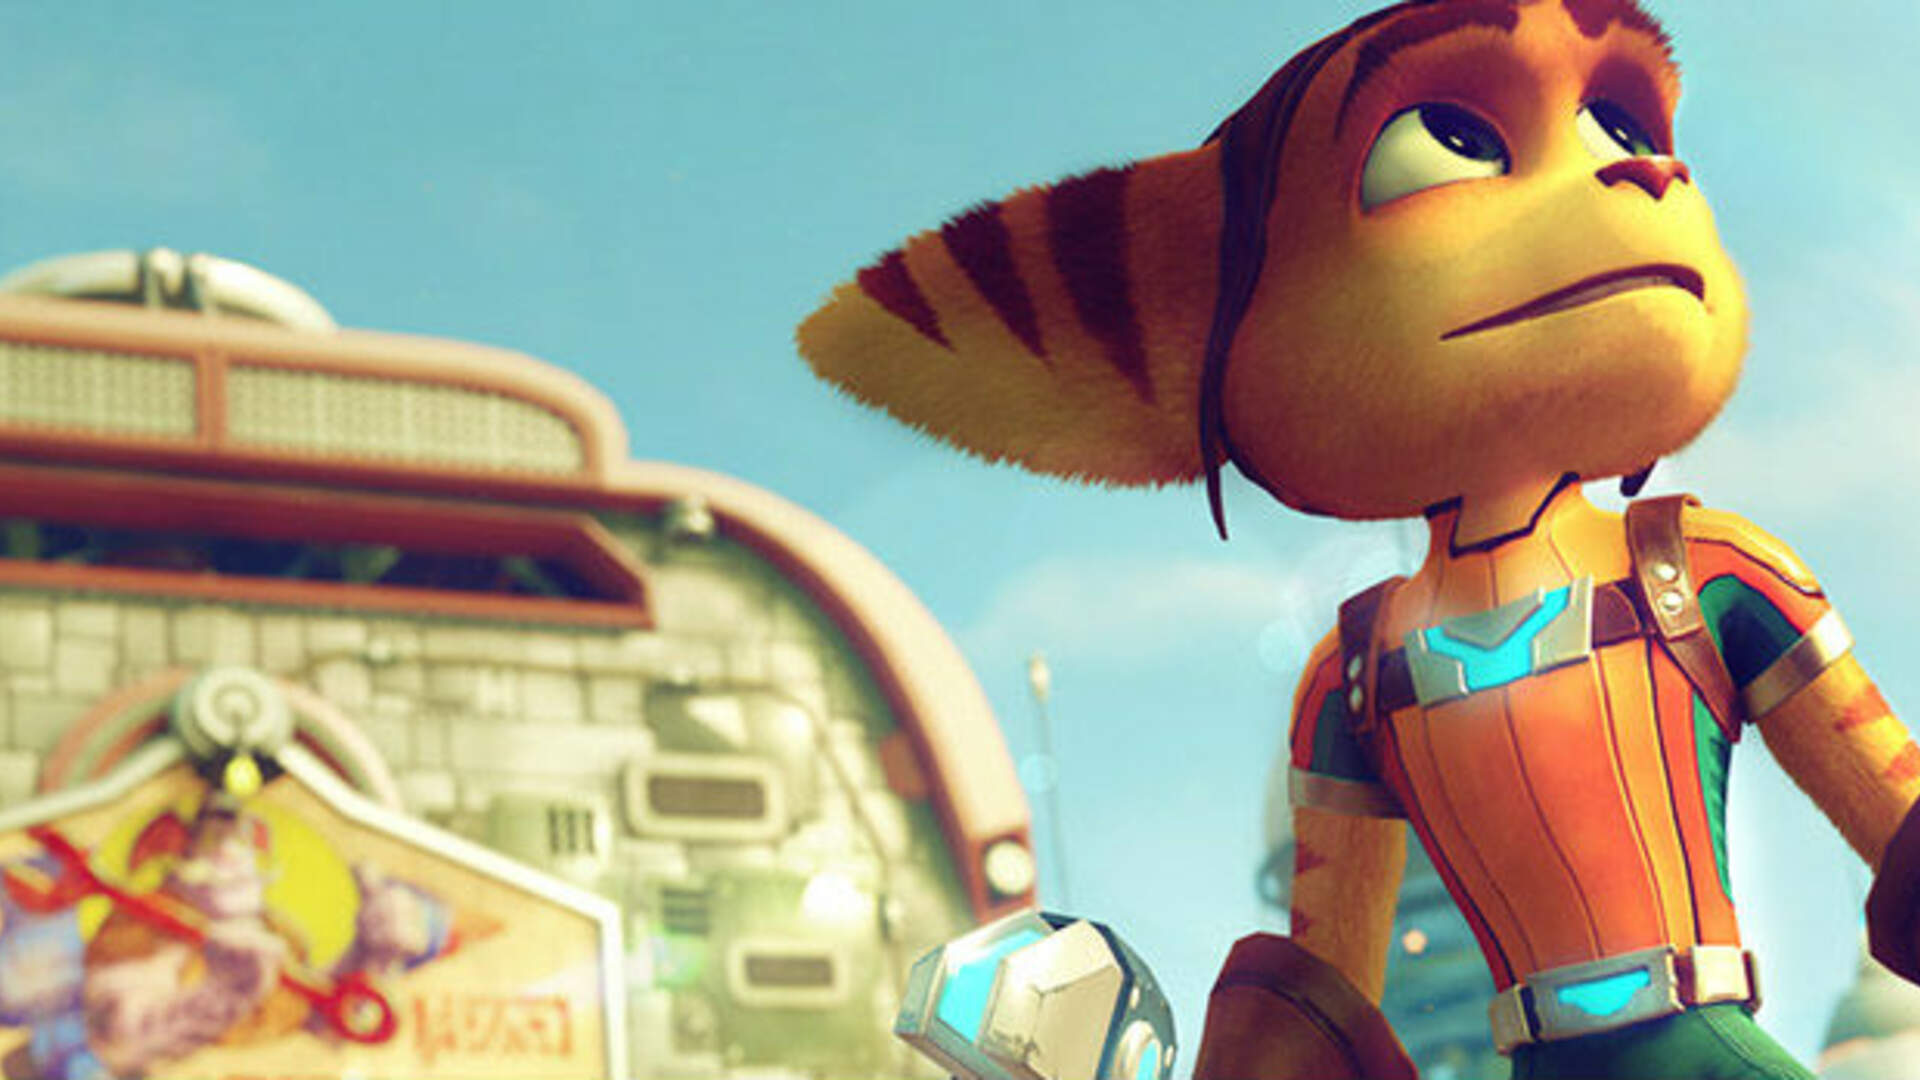 Ratchet & Clank Devs Got in a Legal Spat for Using a Nursery Rhyme In-Game